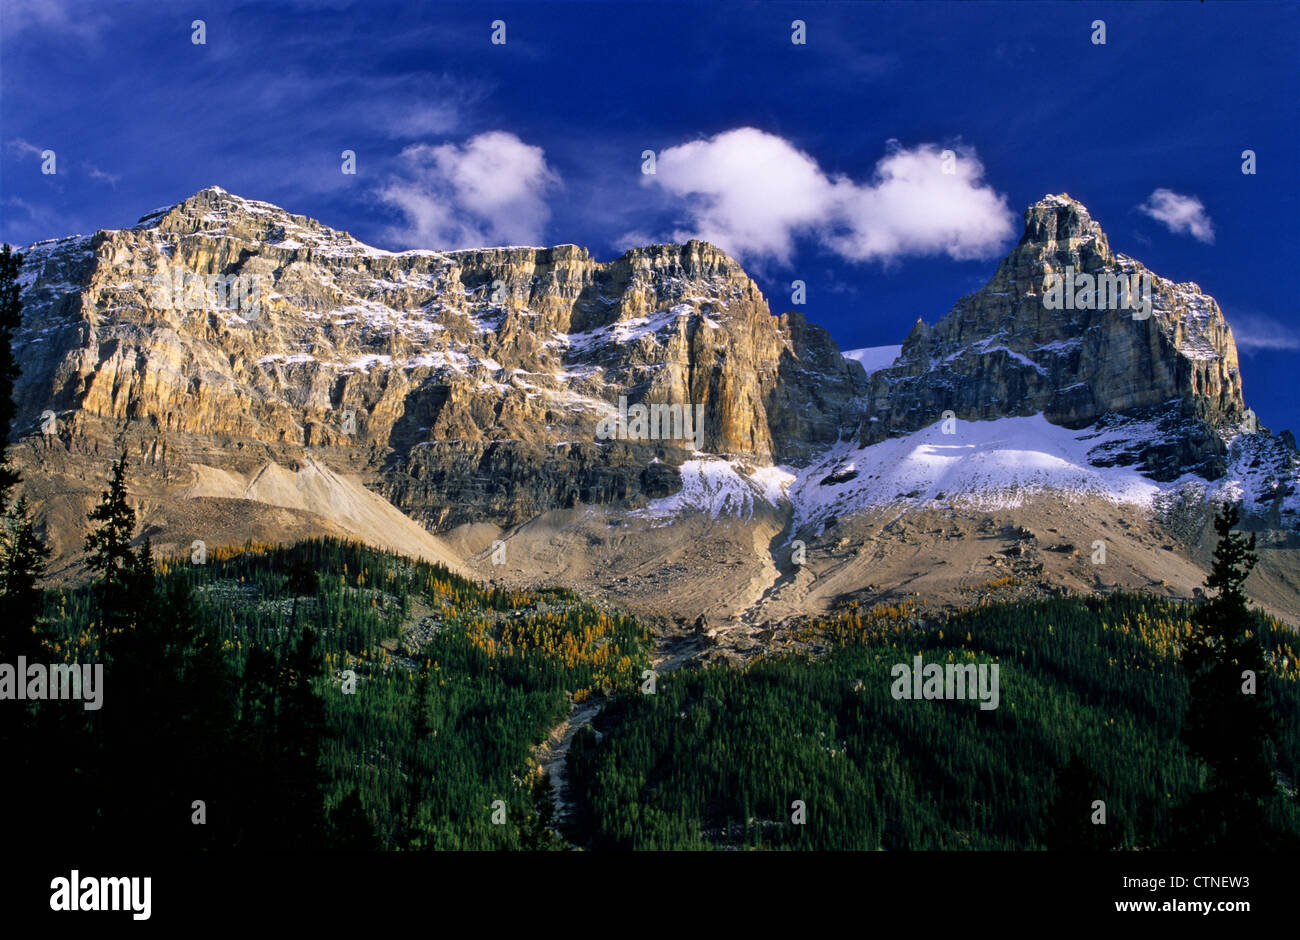 A view of one of the mountains on Yoho National Park, on the Canadian Rockies - Stock Image